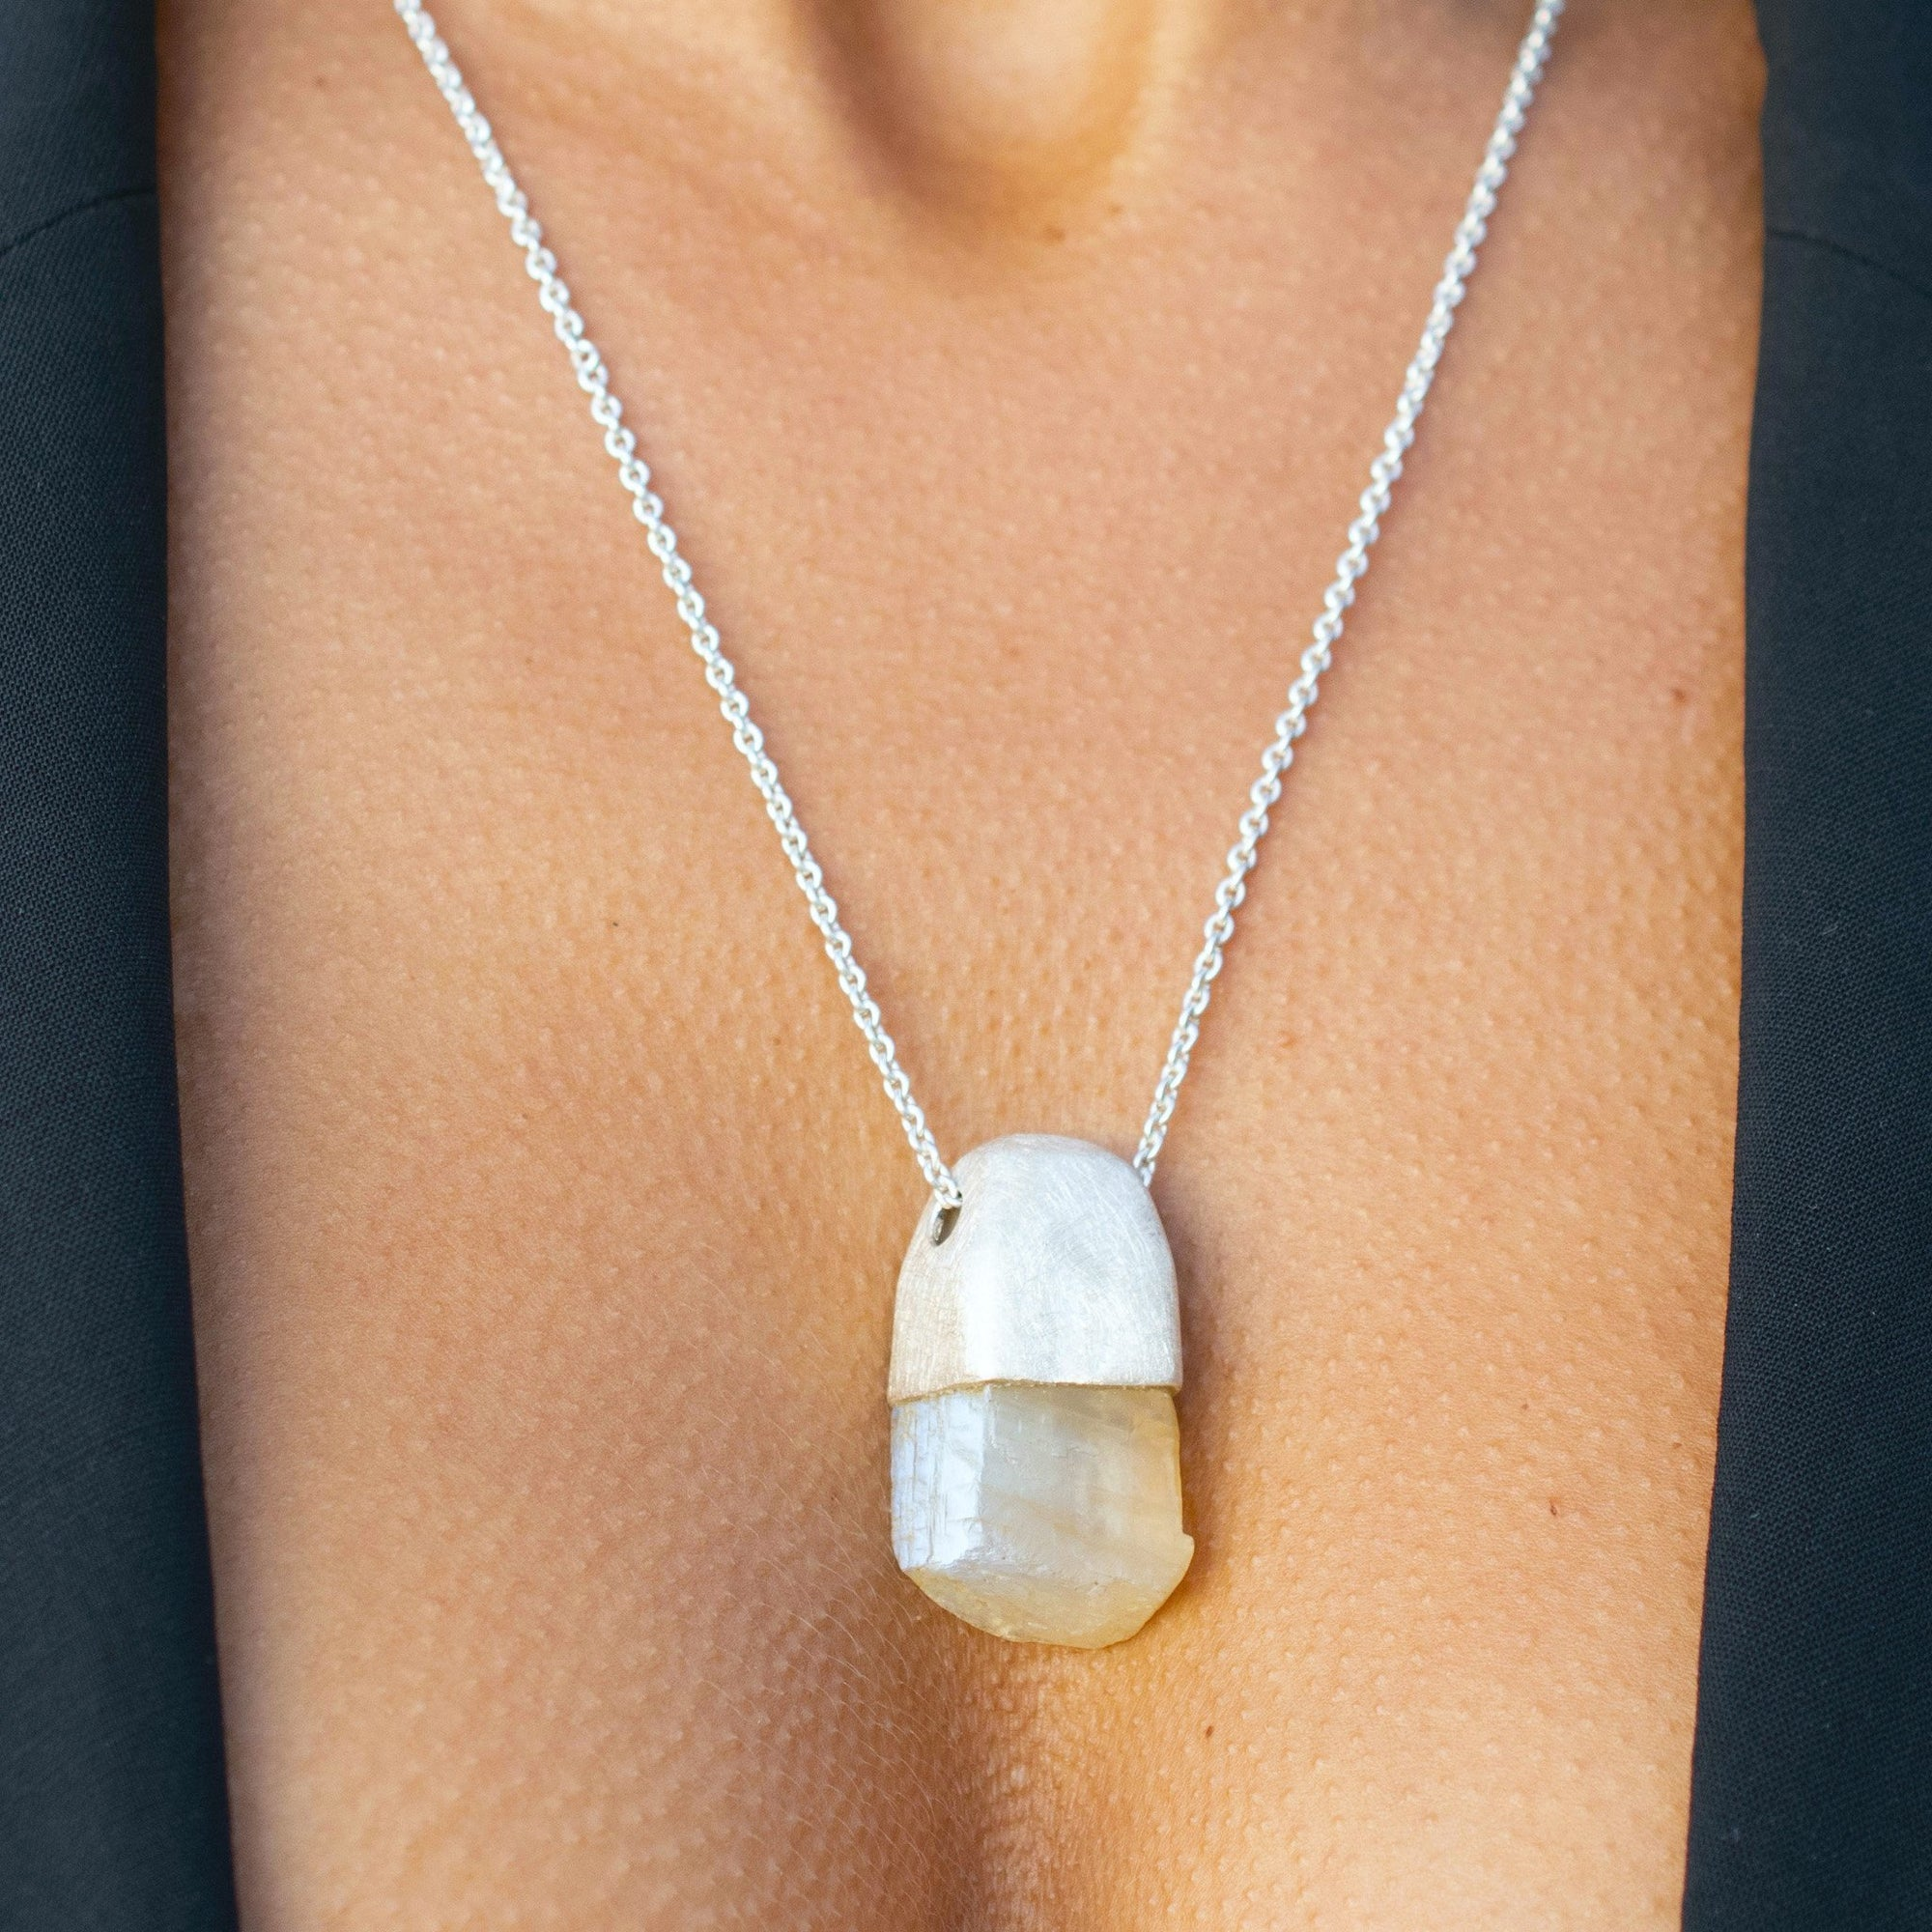 MAGNUM MOONSTONE PENDANT - One-of-a-kind